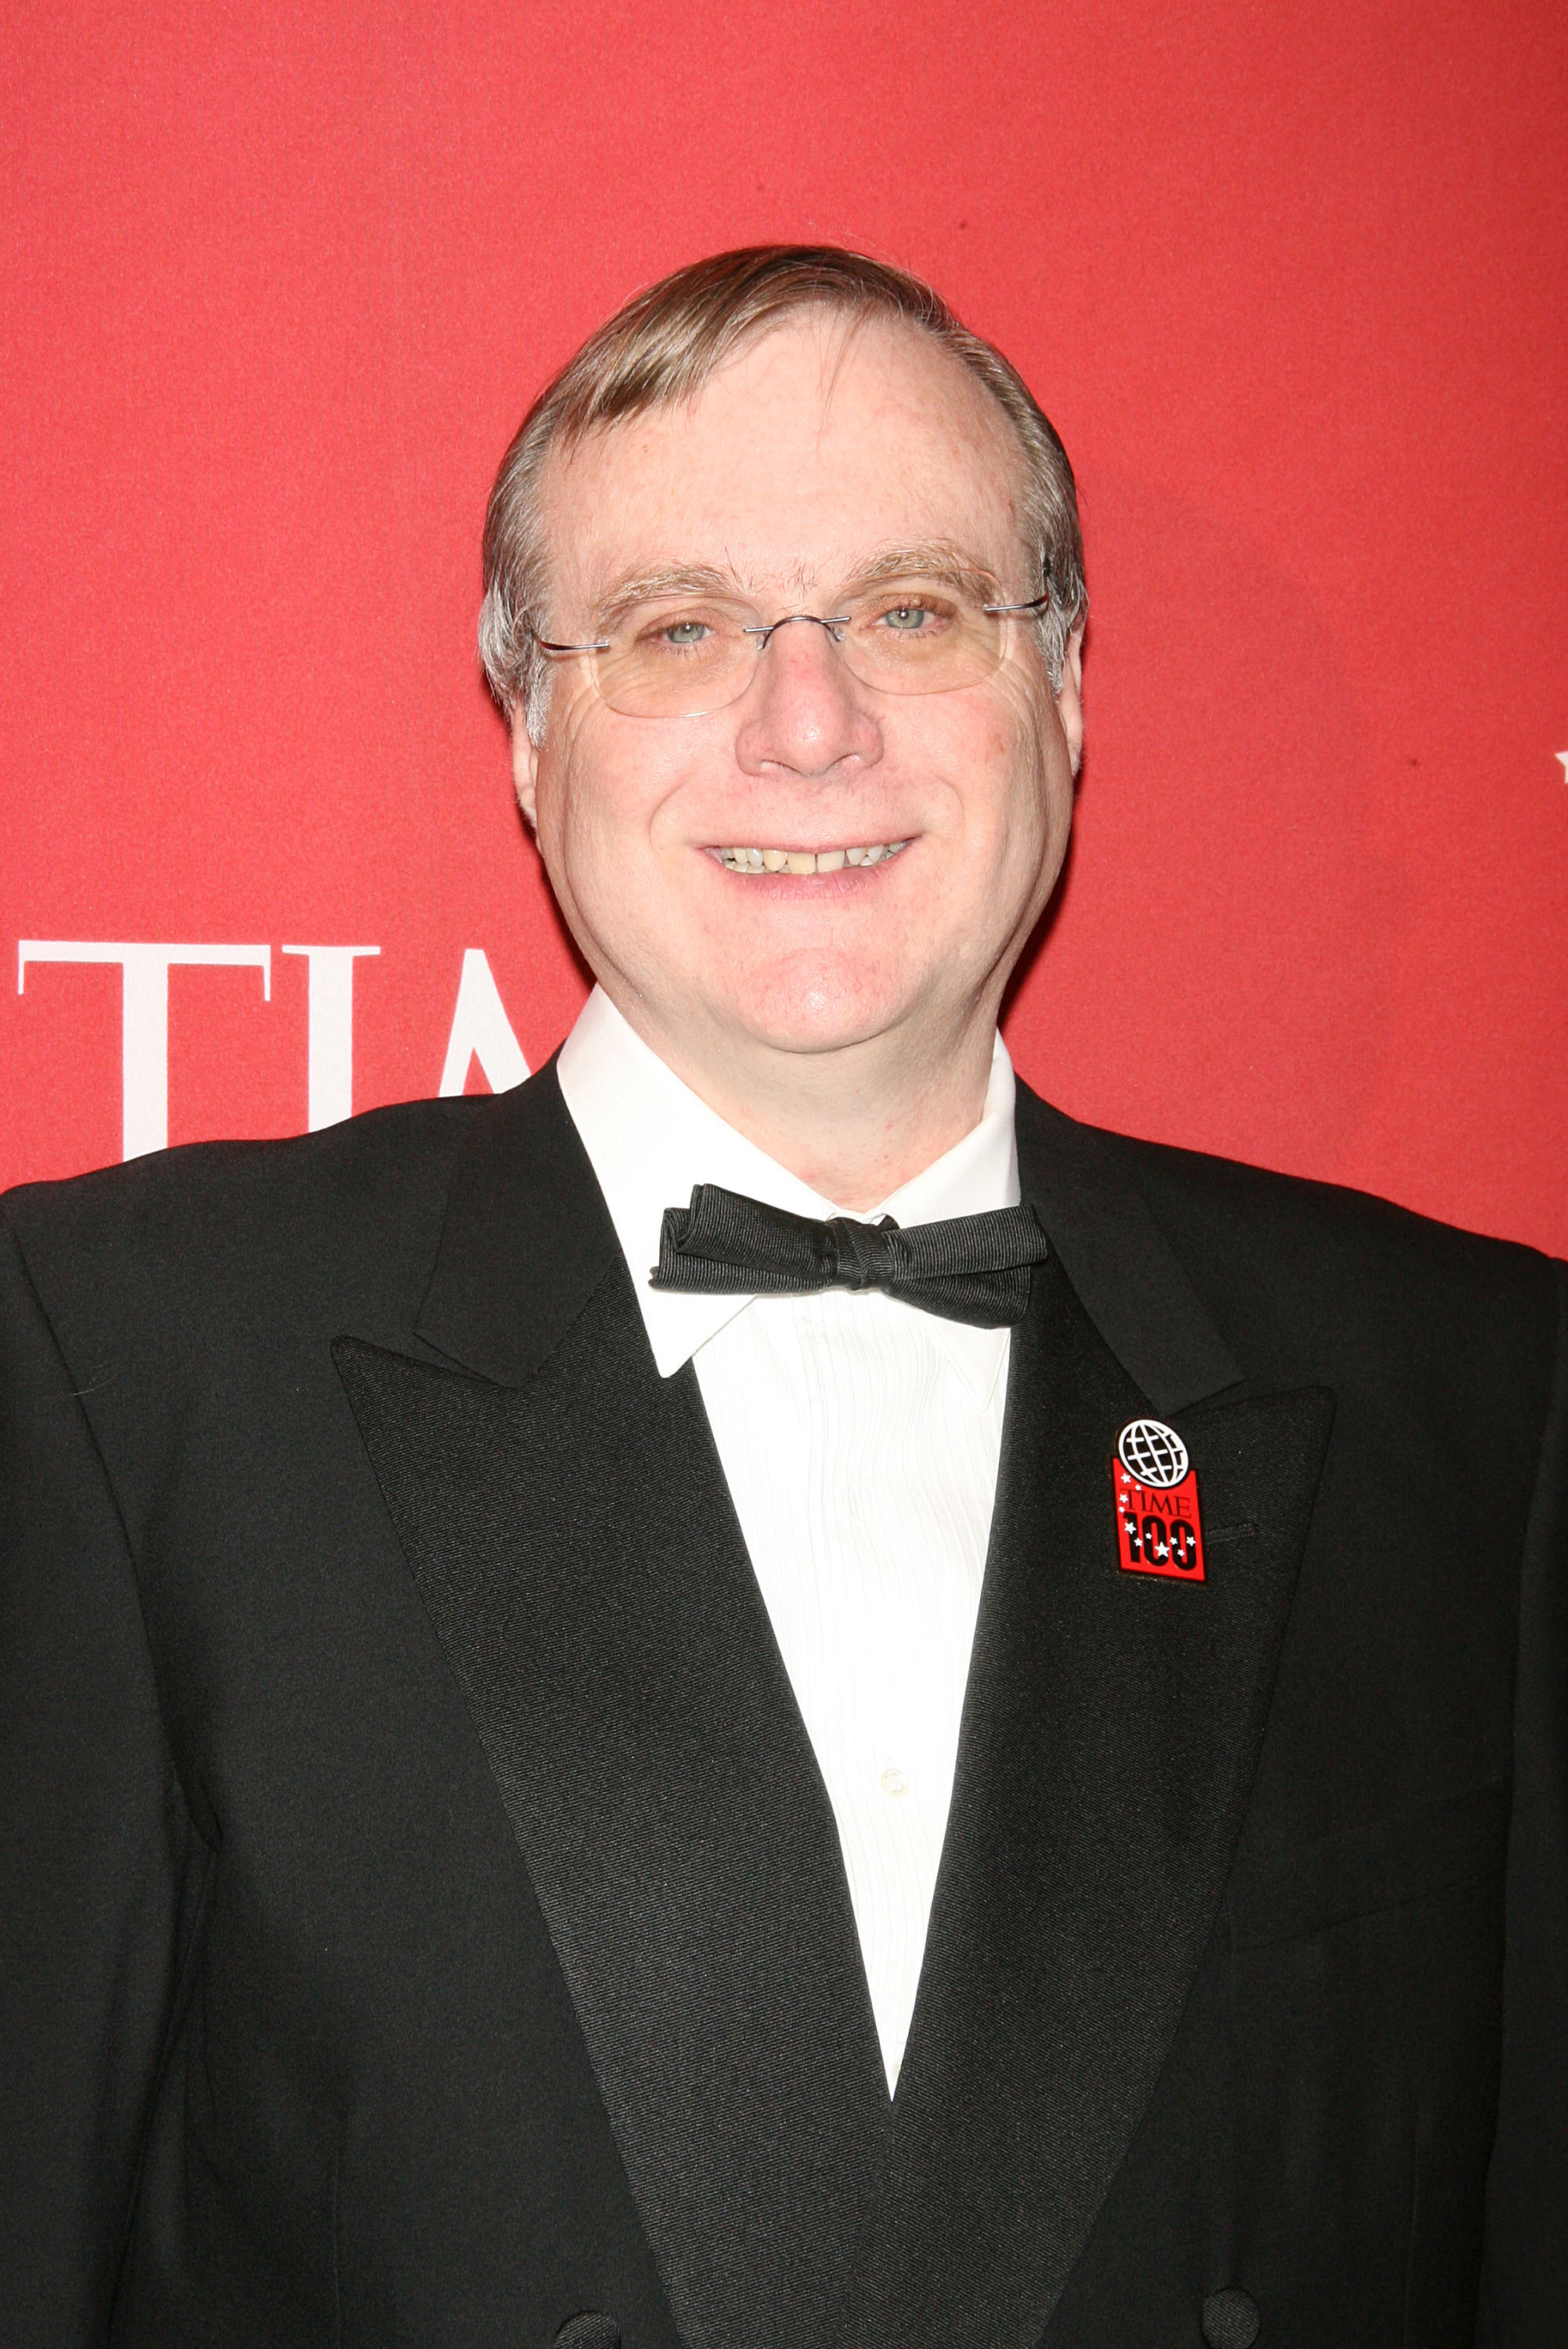 Paul Allen, co-founder of Microsoft, died yesterday from complications of non-Hodgkin's lymphoma. Allen was incredibly involved in the Northwest whether it be owning the Seahawks and the Portland Trail Blazers to giving back philanthropically or creating opportunities for artists in the area i.e., Upstream Music Festival. Seattle and the world lost a visionary, but we celebrate his memory with the things he left behind - including these five pearls of wisdom! (Image courtesy of WENN Images).